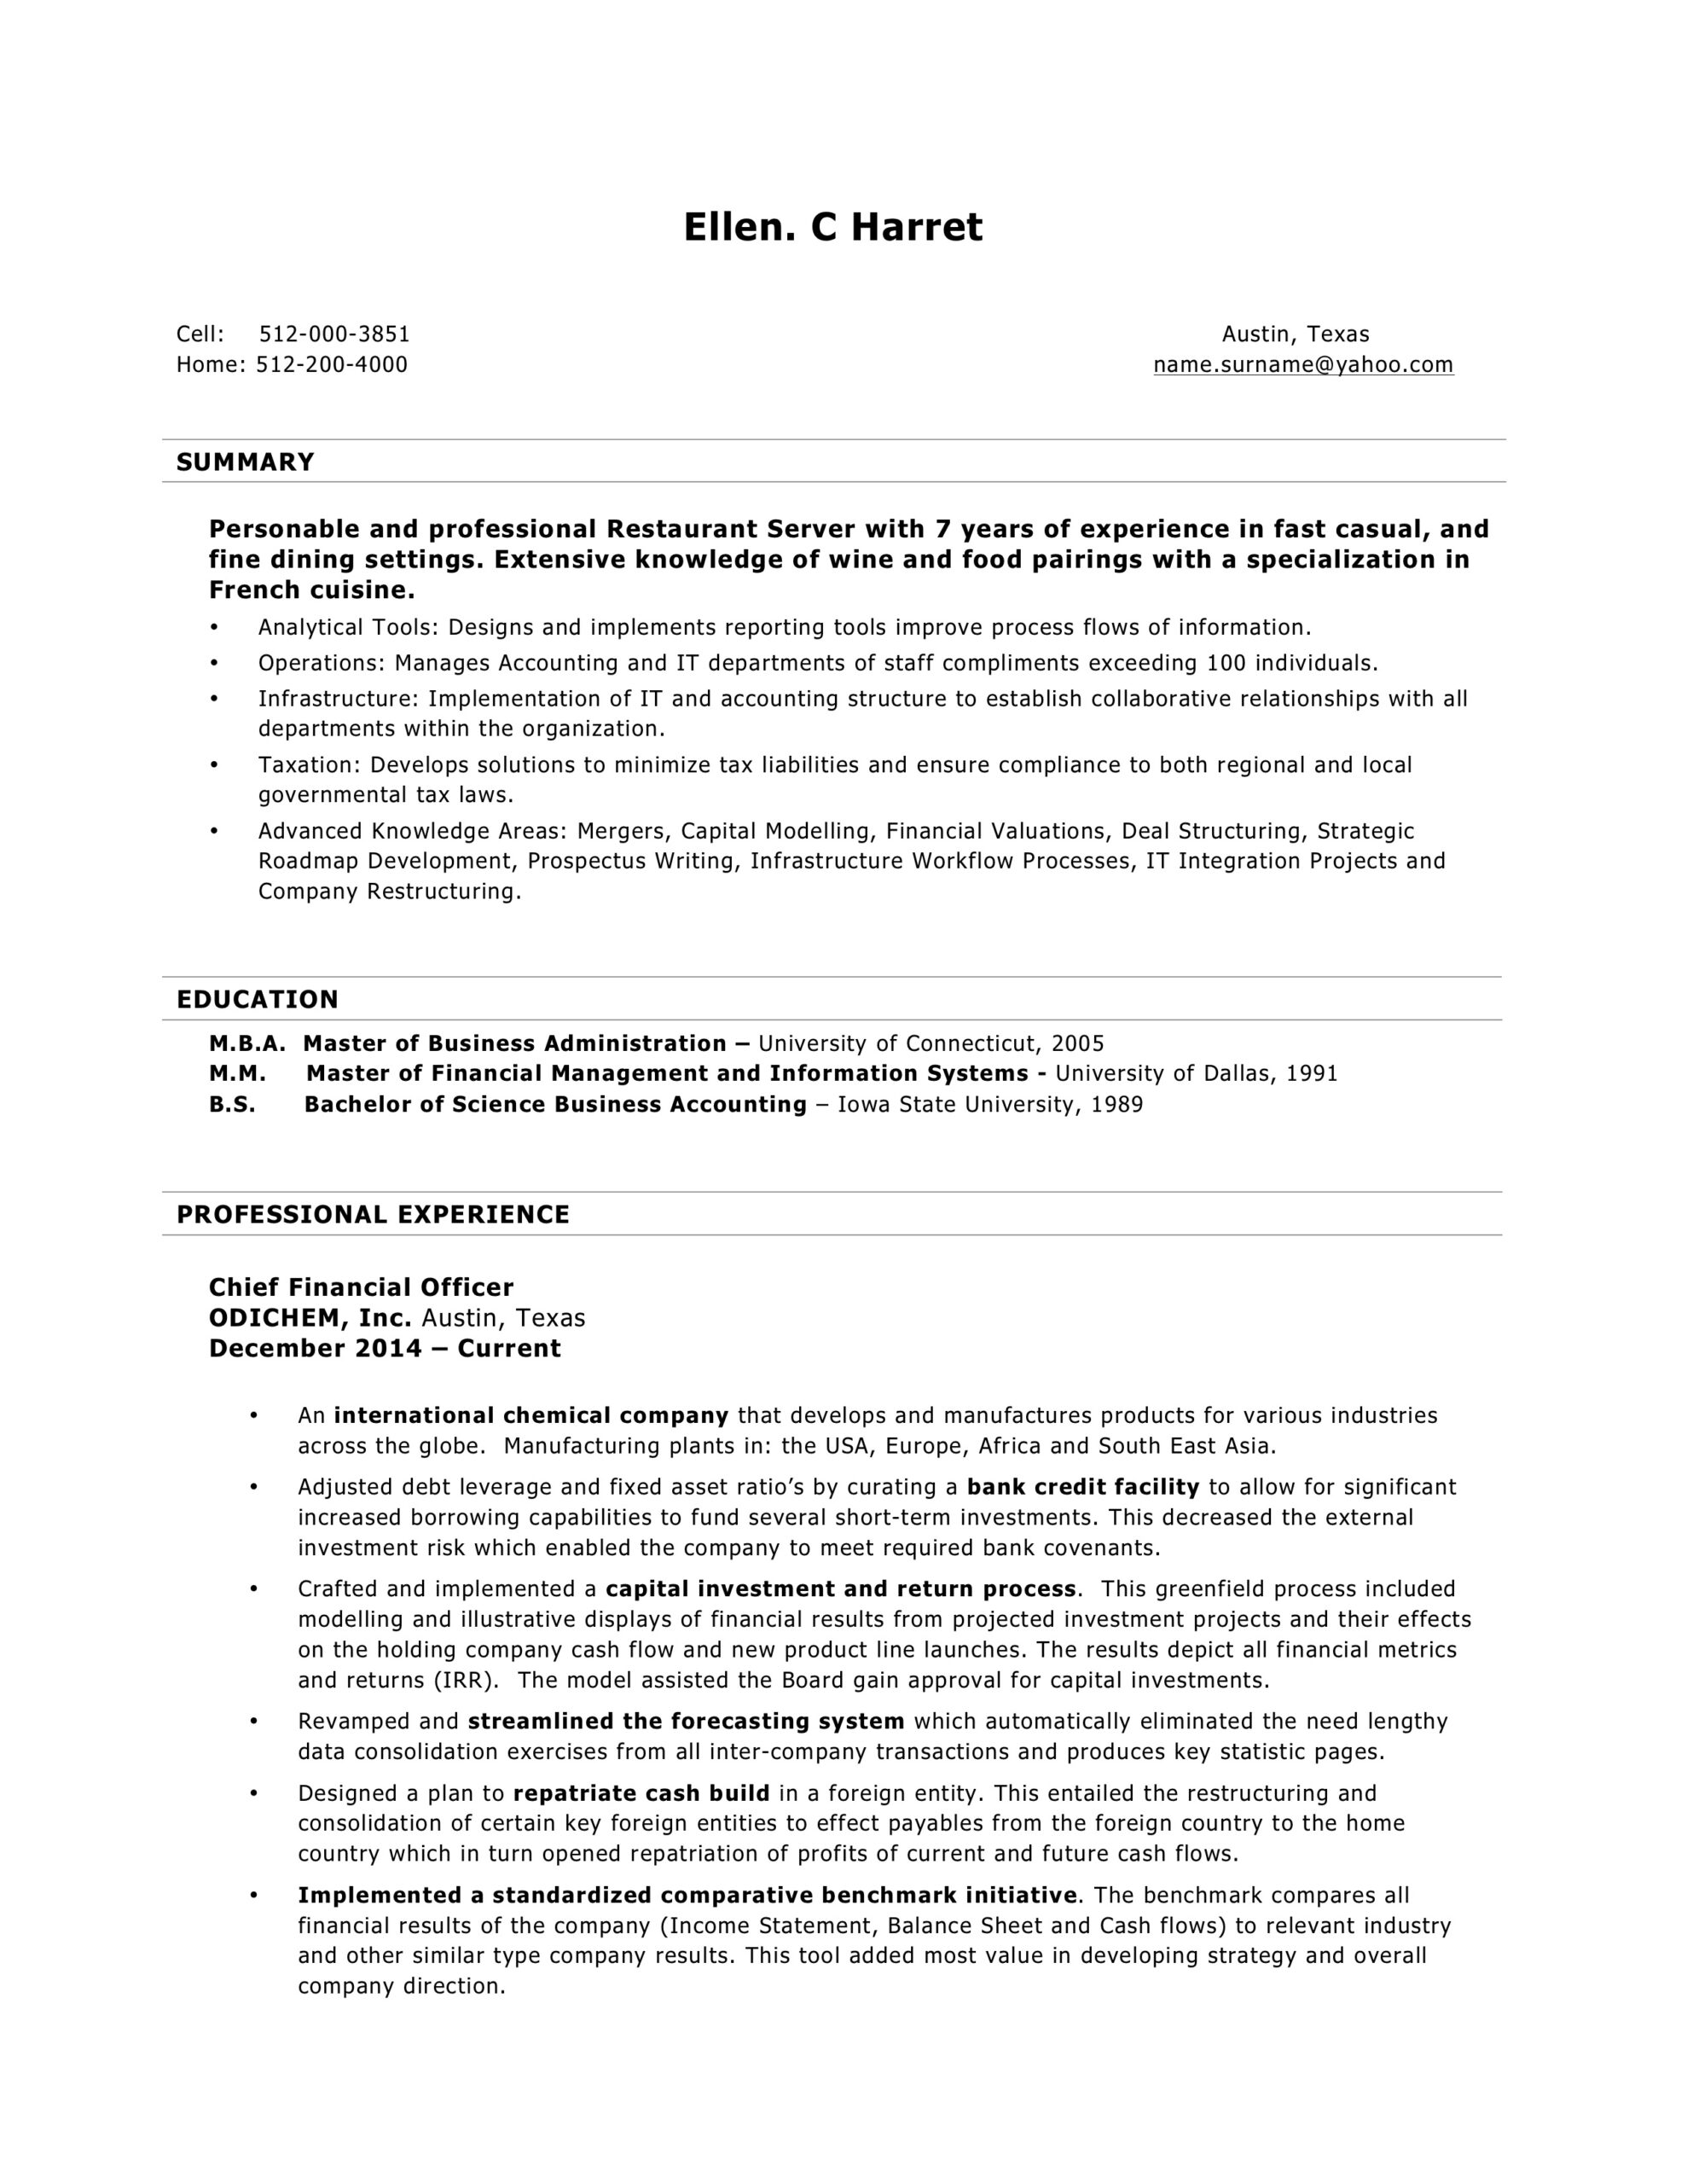 free word resume templates in ms simple format file server template for animation Resume Simple Resume Format Word File Download